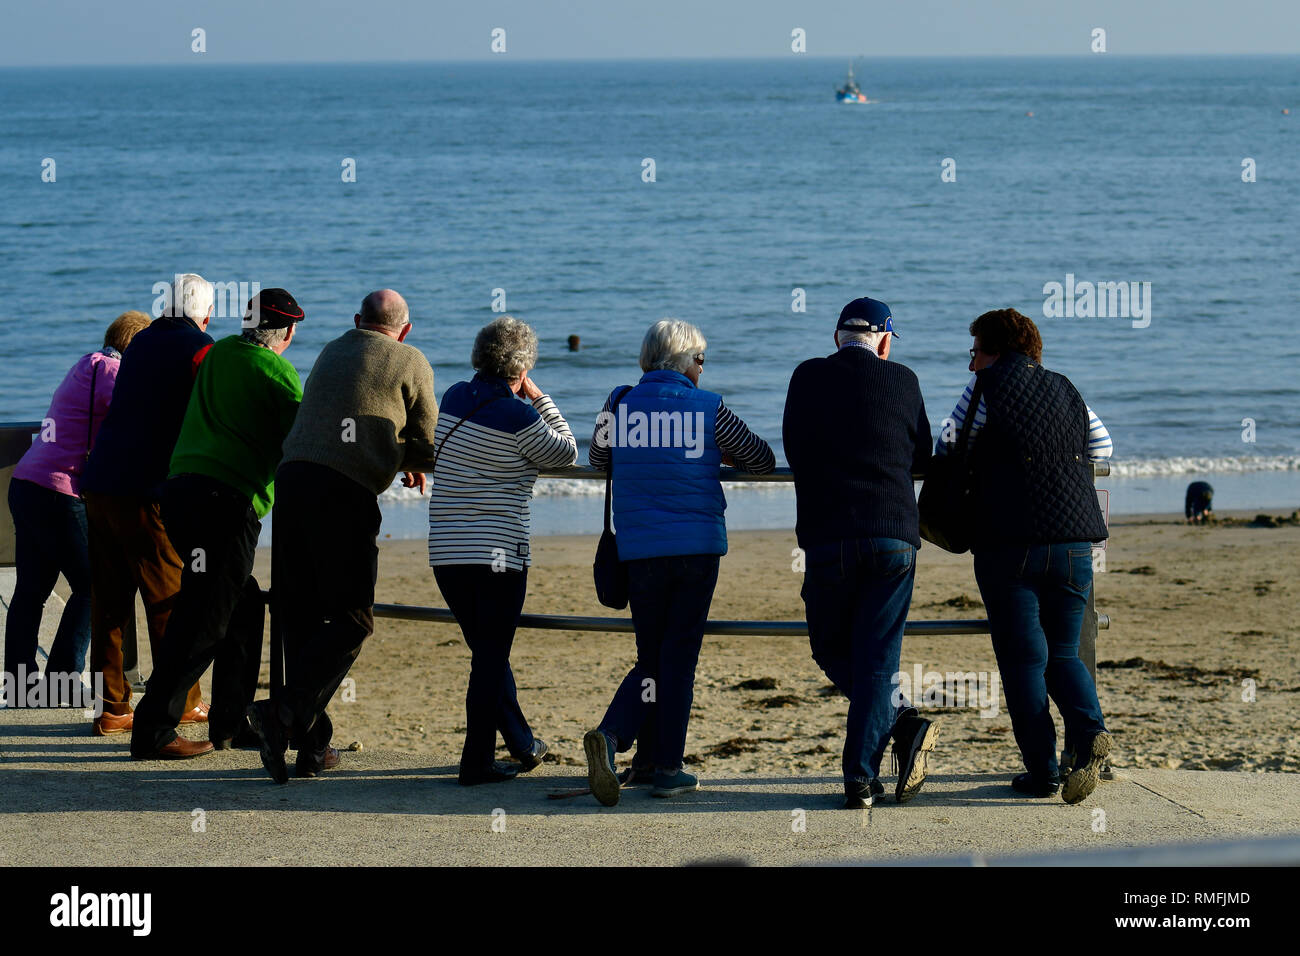 Lyme Regis, Dorset, UK. 15th Feb, 2019. UK Weather. A Large group of people enjoying Lyme Regis in Dorset on a Warm and sunny afternoon in February 2019/Picture Credit; Credit: Robert Timoney/Alamy Live News - Stock Image